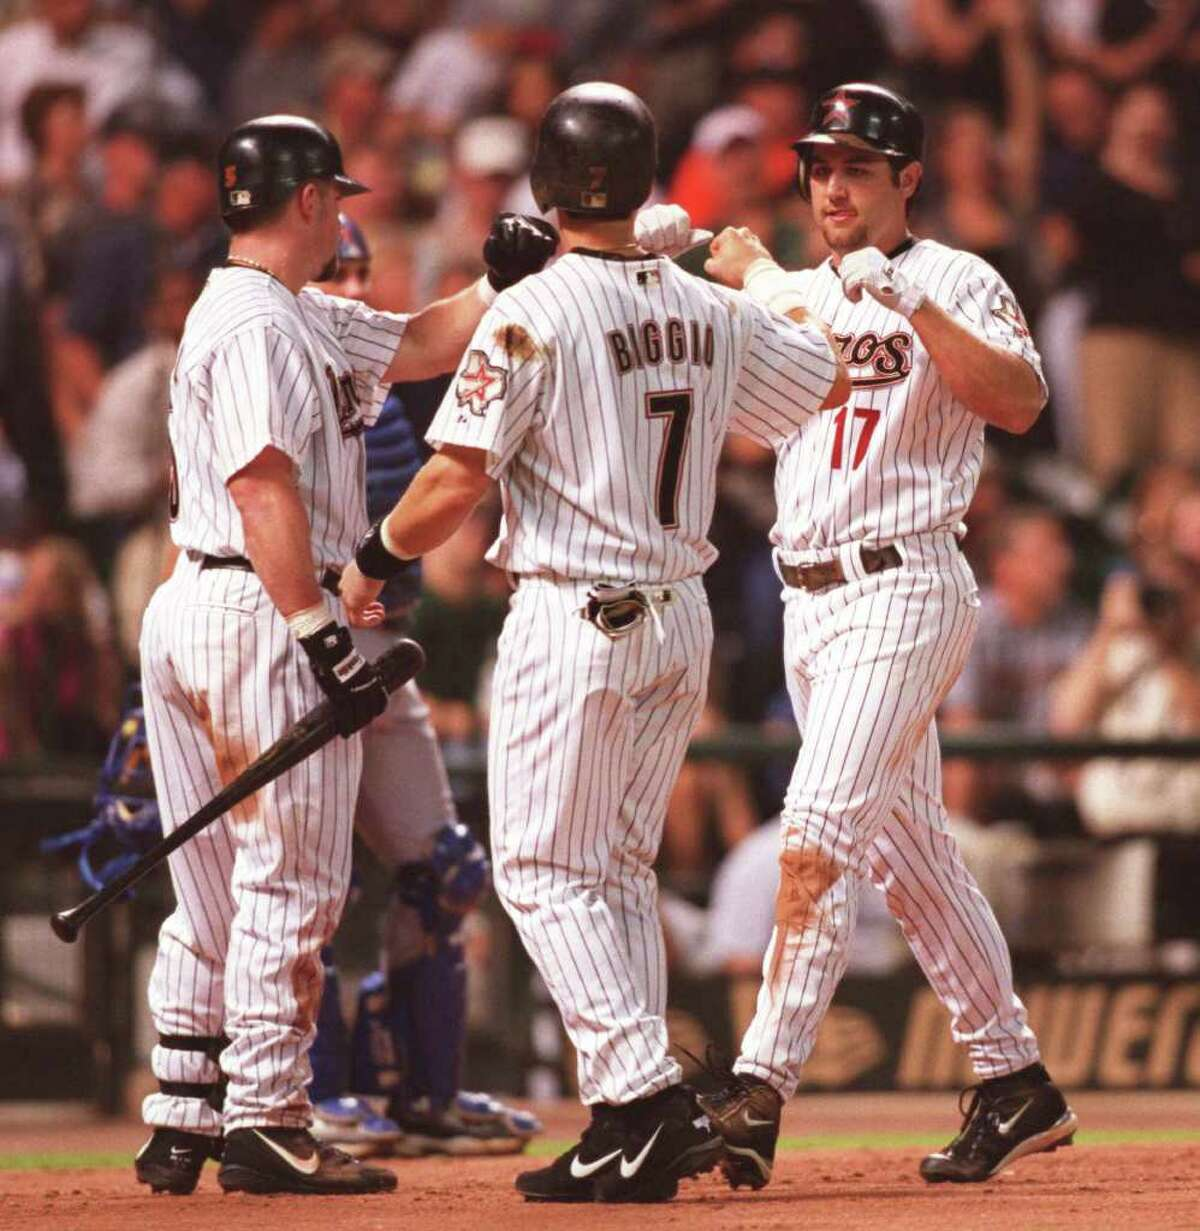 8/20/02--Houston Astros Jeff Bagwell and Craig Biggio welcome Lance Berkman home after his third inning two run home run against the Chicago Cubs Tuesday evening, Aug. 20, 2002, at Minute Maid Park in Houston. (Kevin Fujii/Chronicle) HOUCHRON CAPTION (08/21/2002): Jeff Bagwell, left, and Craig Biggio welcome Lance Berkman home after a two run homer in the third. HOUCHRON CAPTION (08/22/2002-2-STAR): Jeff Bagwell, left, and Craig Biggio welcome Lance Berkman home after a two-run homer in the third.